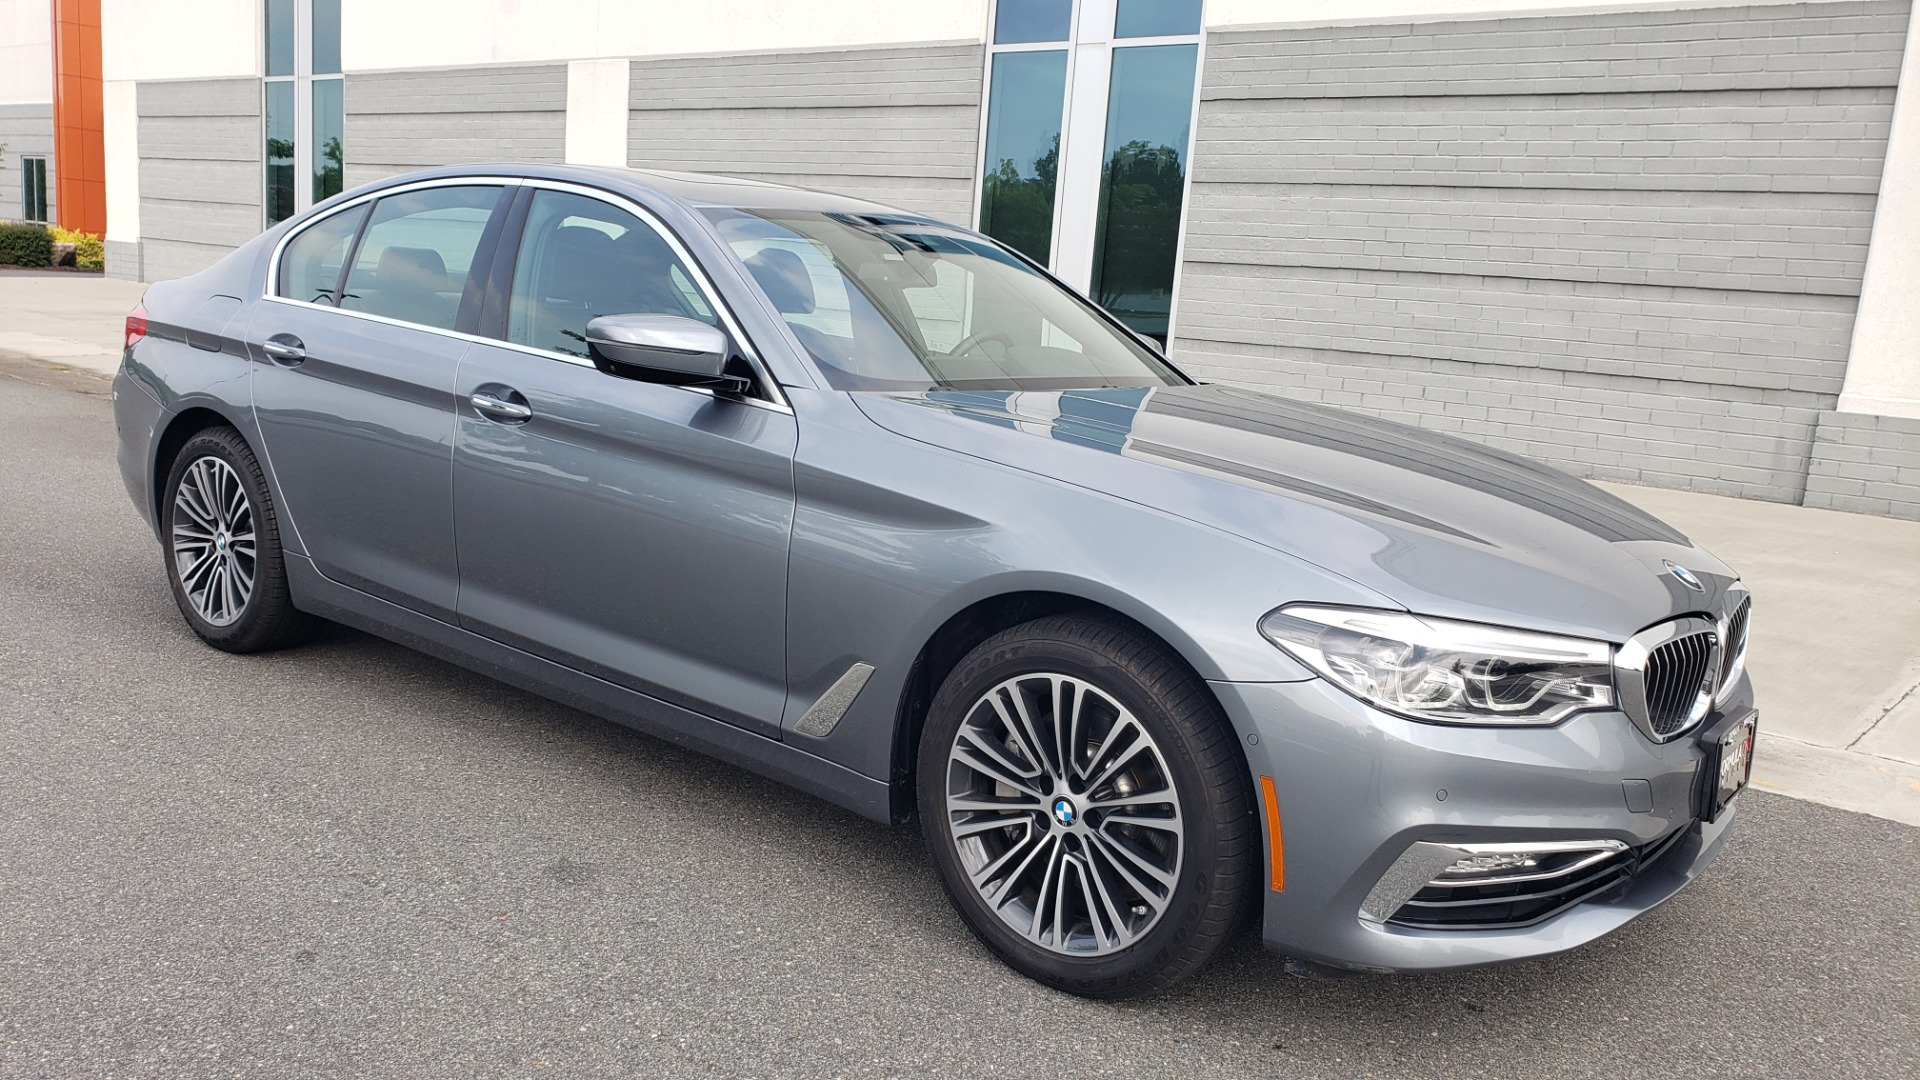 Used 2018 BMW 5 SERIES 540I XDRIVE PREMIUM / EXECUTIVE / LUXURY / H/K SND / REMOTE CONTROL PARKING for sale $40,995 at Formula Imports in Charlotte NC 28227 7